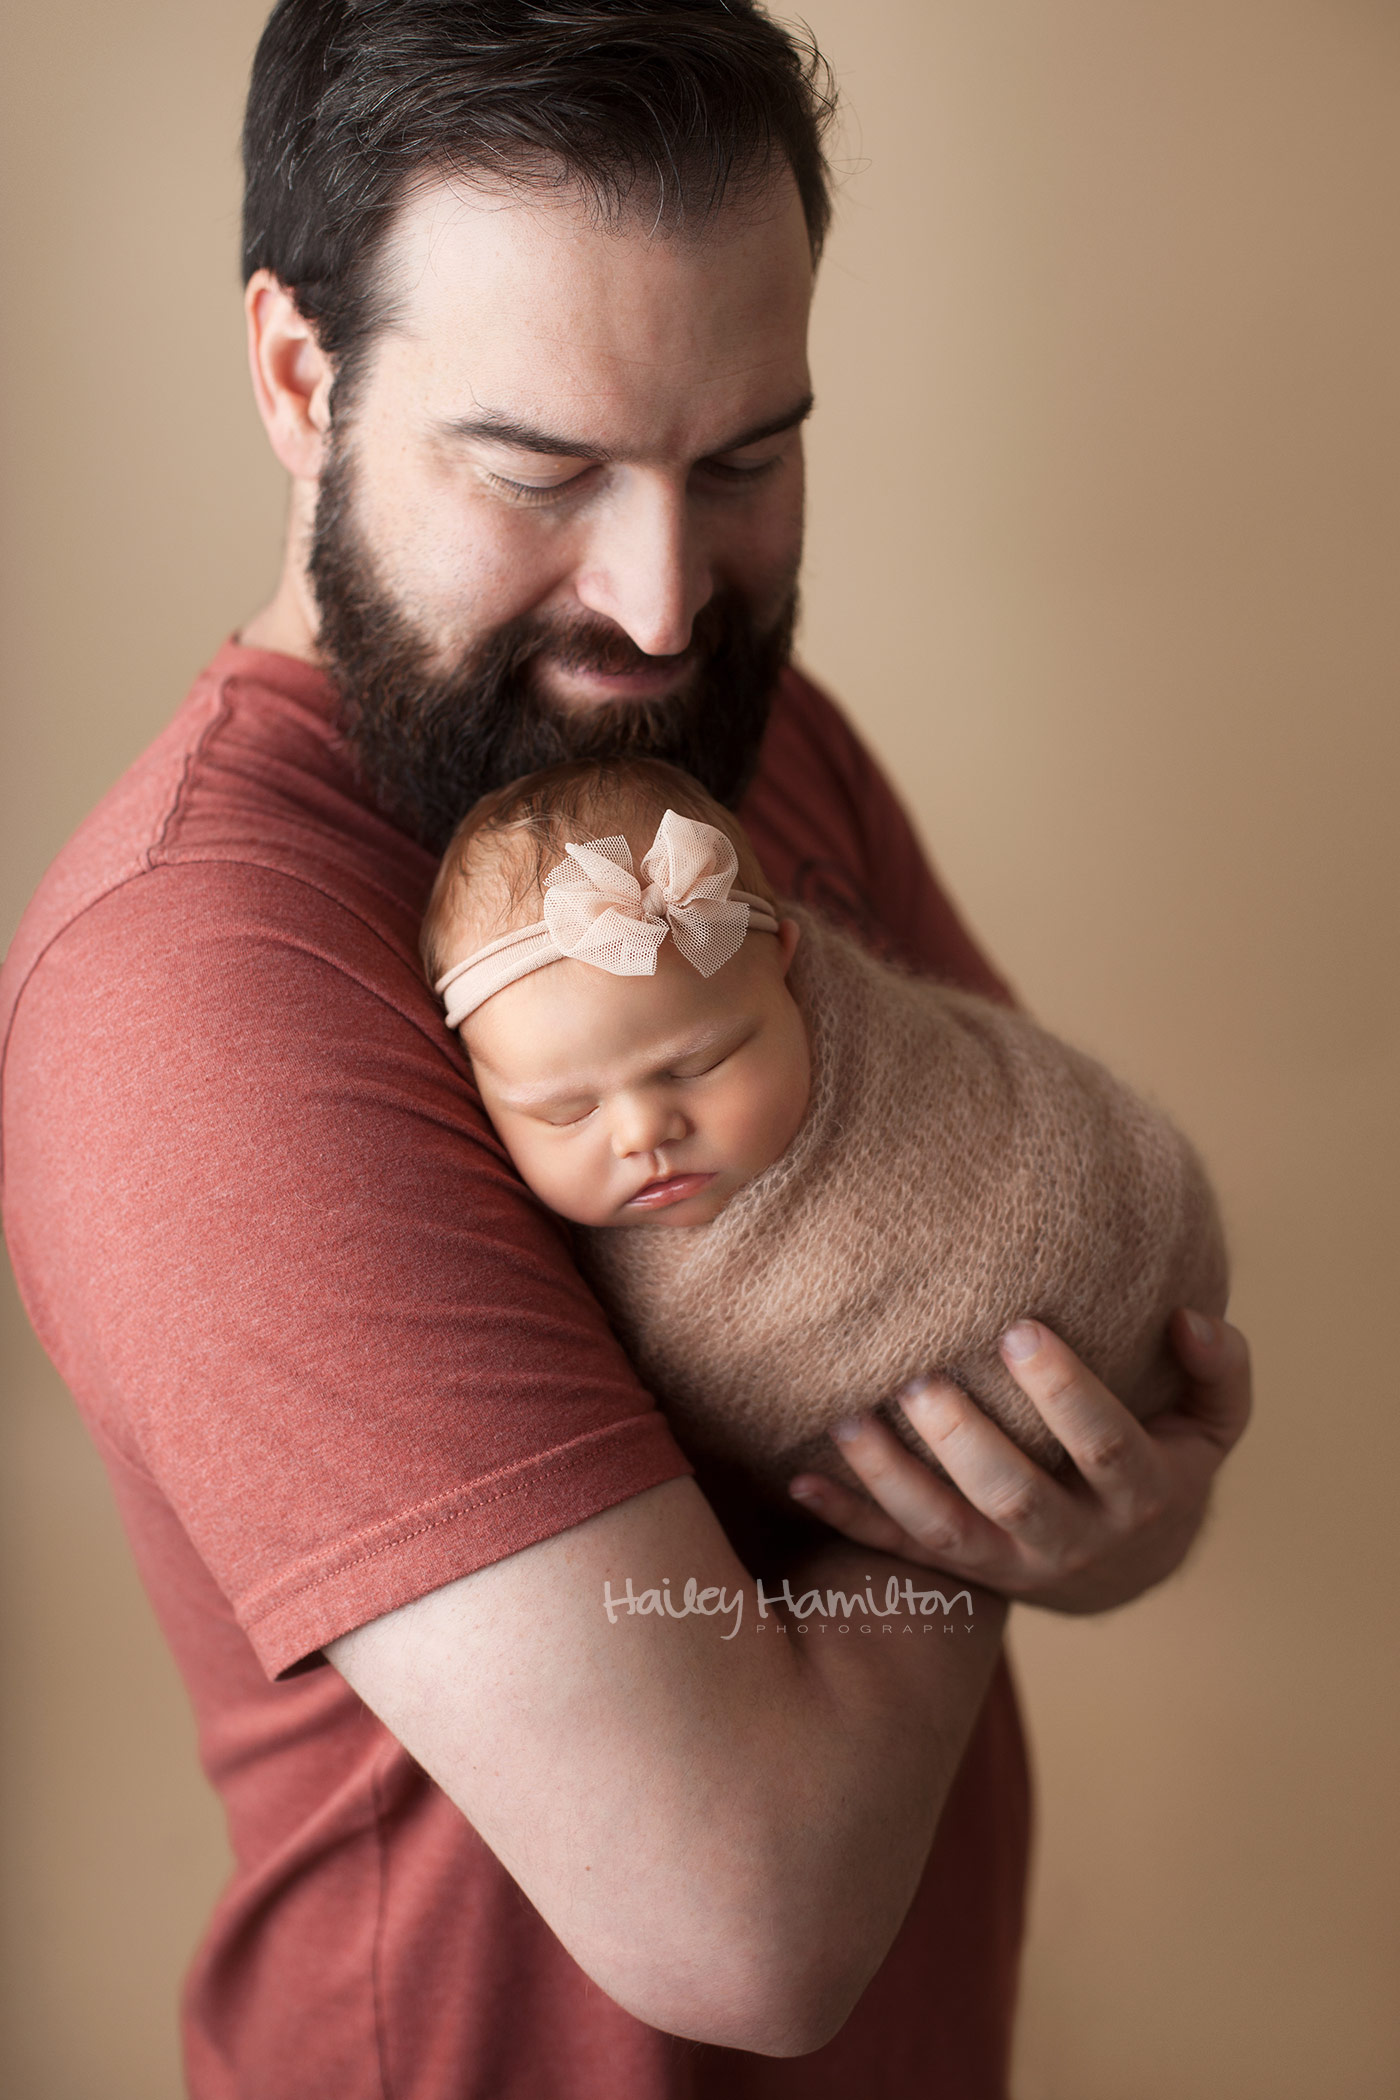 Dad Posed With New Born Baby